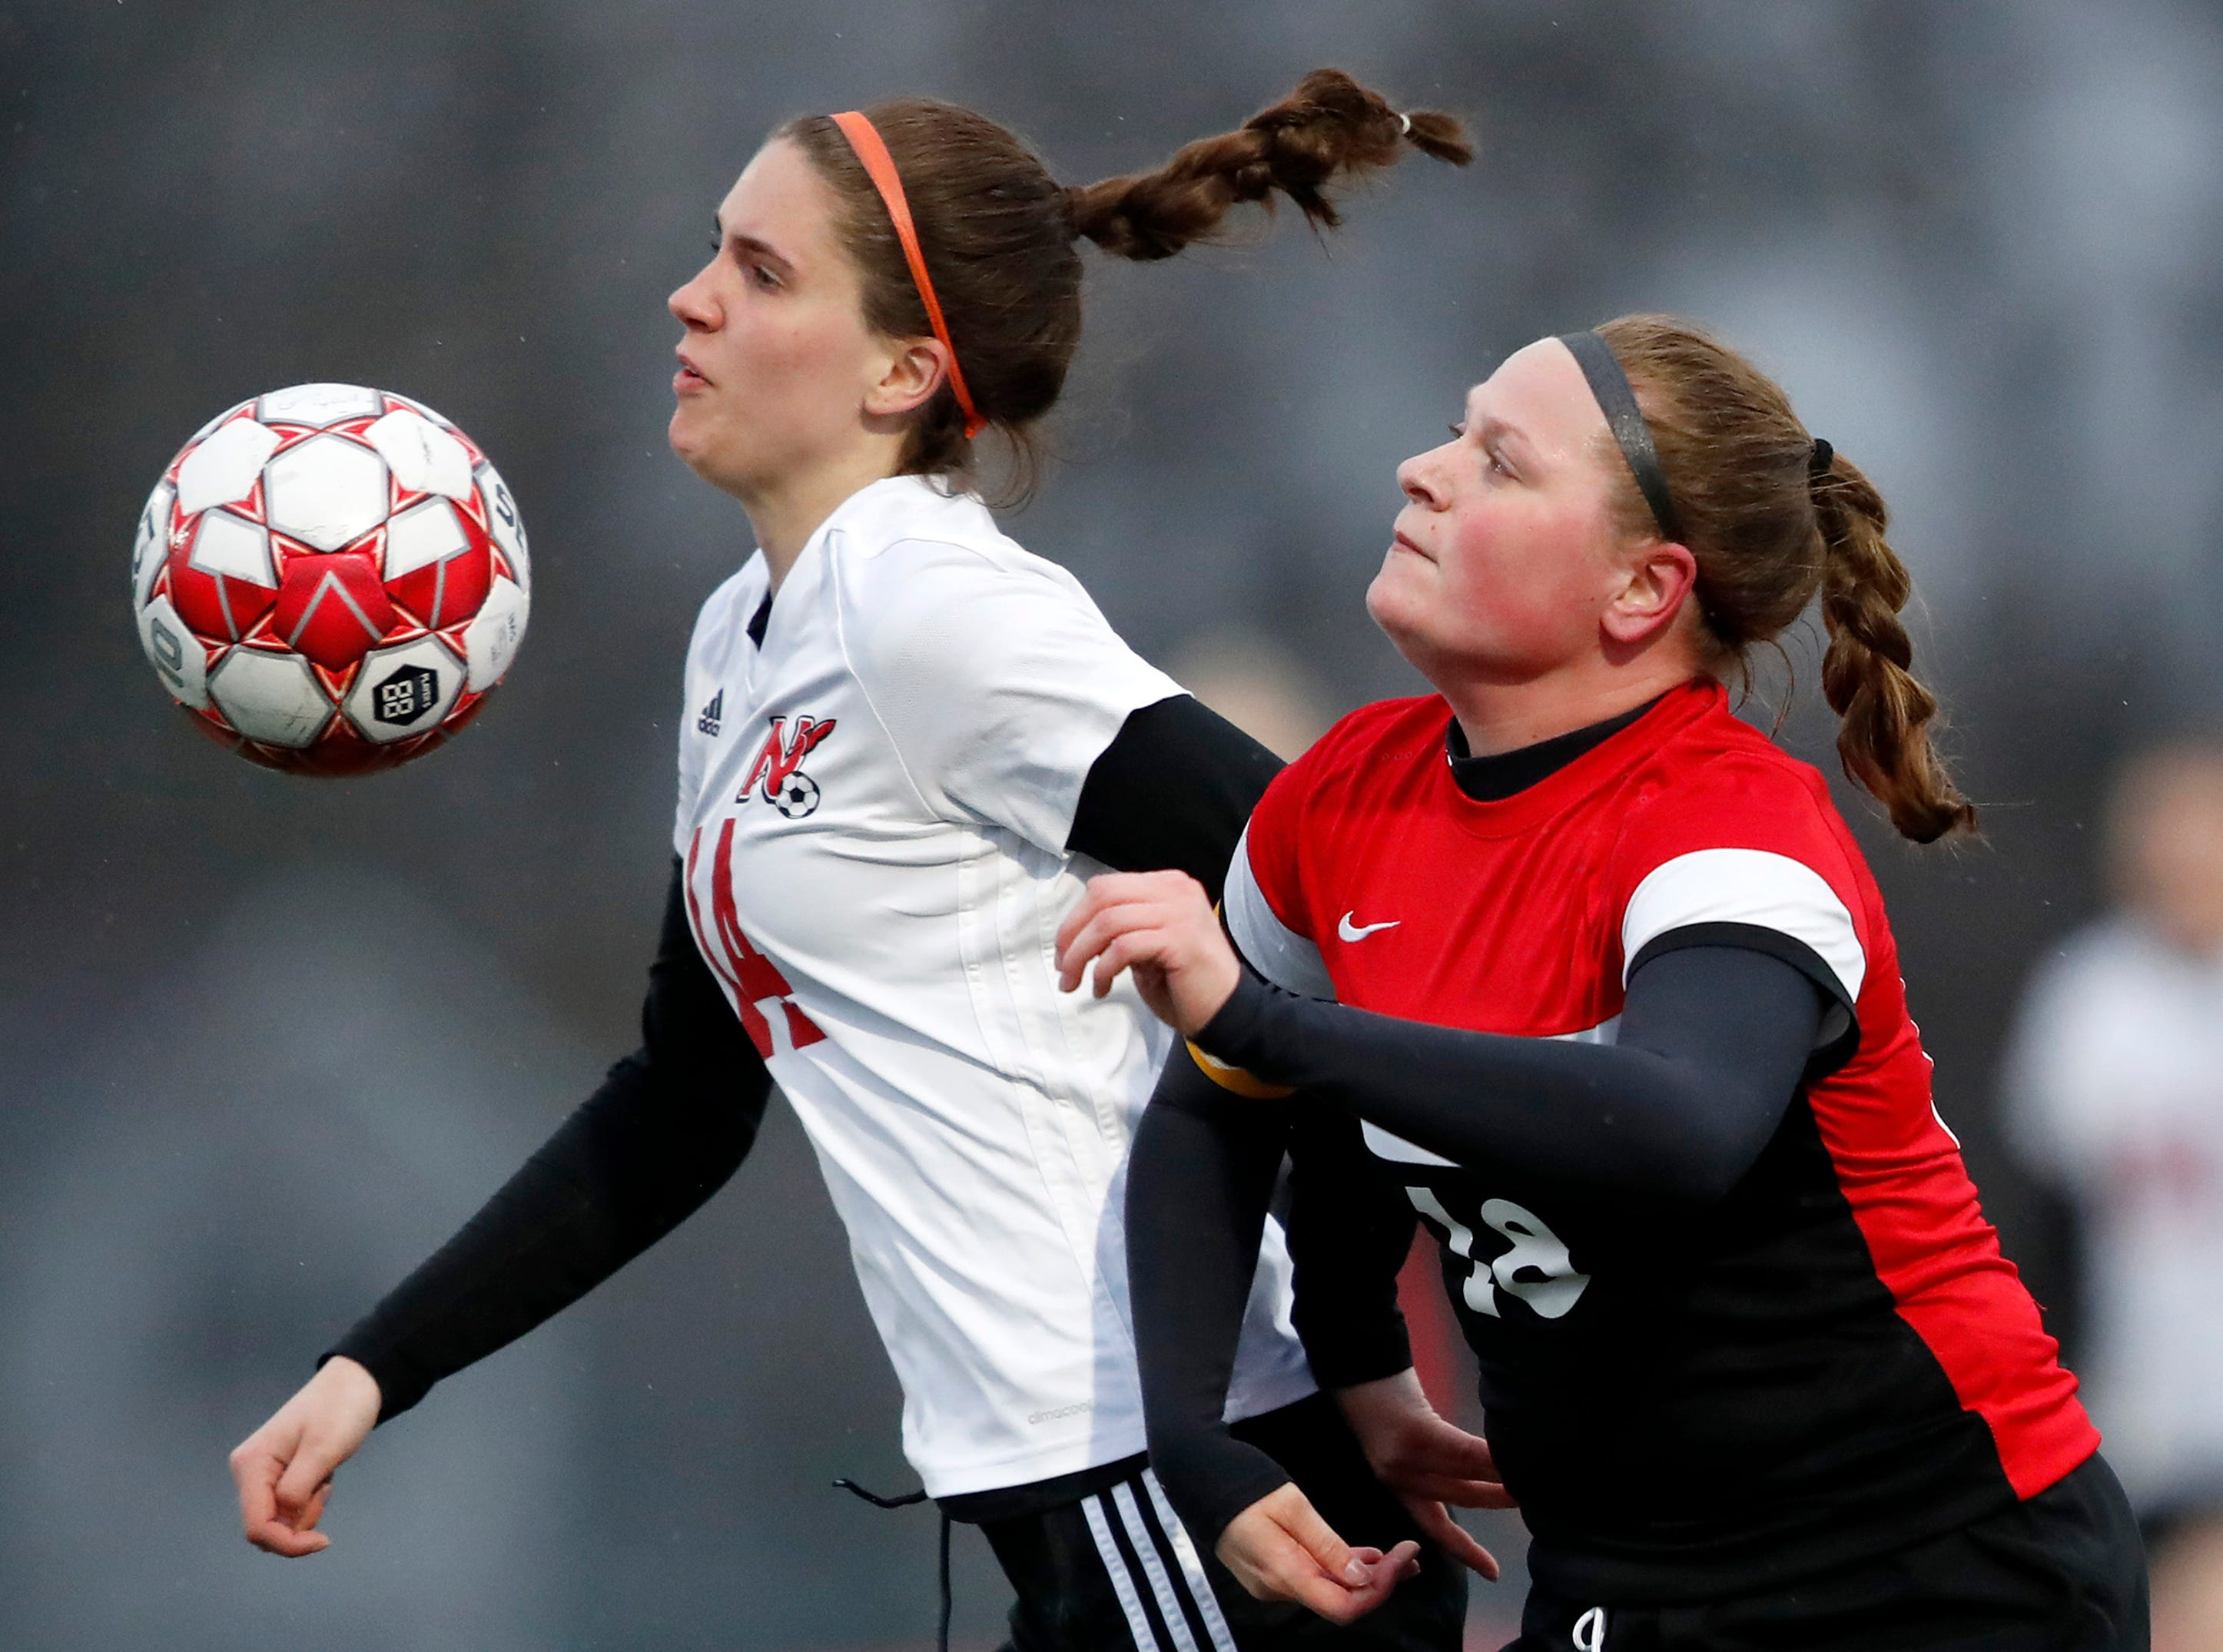 Neenah High School's Cami Basler chests the ball away from Kimberly High School's Lexi Huntington Tuesday, April 30, 2019, in Kimberly, Wis. Danny Damiani/USA TODAY NETWORK-Wisconsin